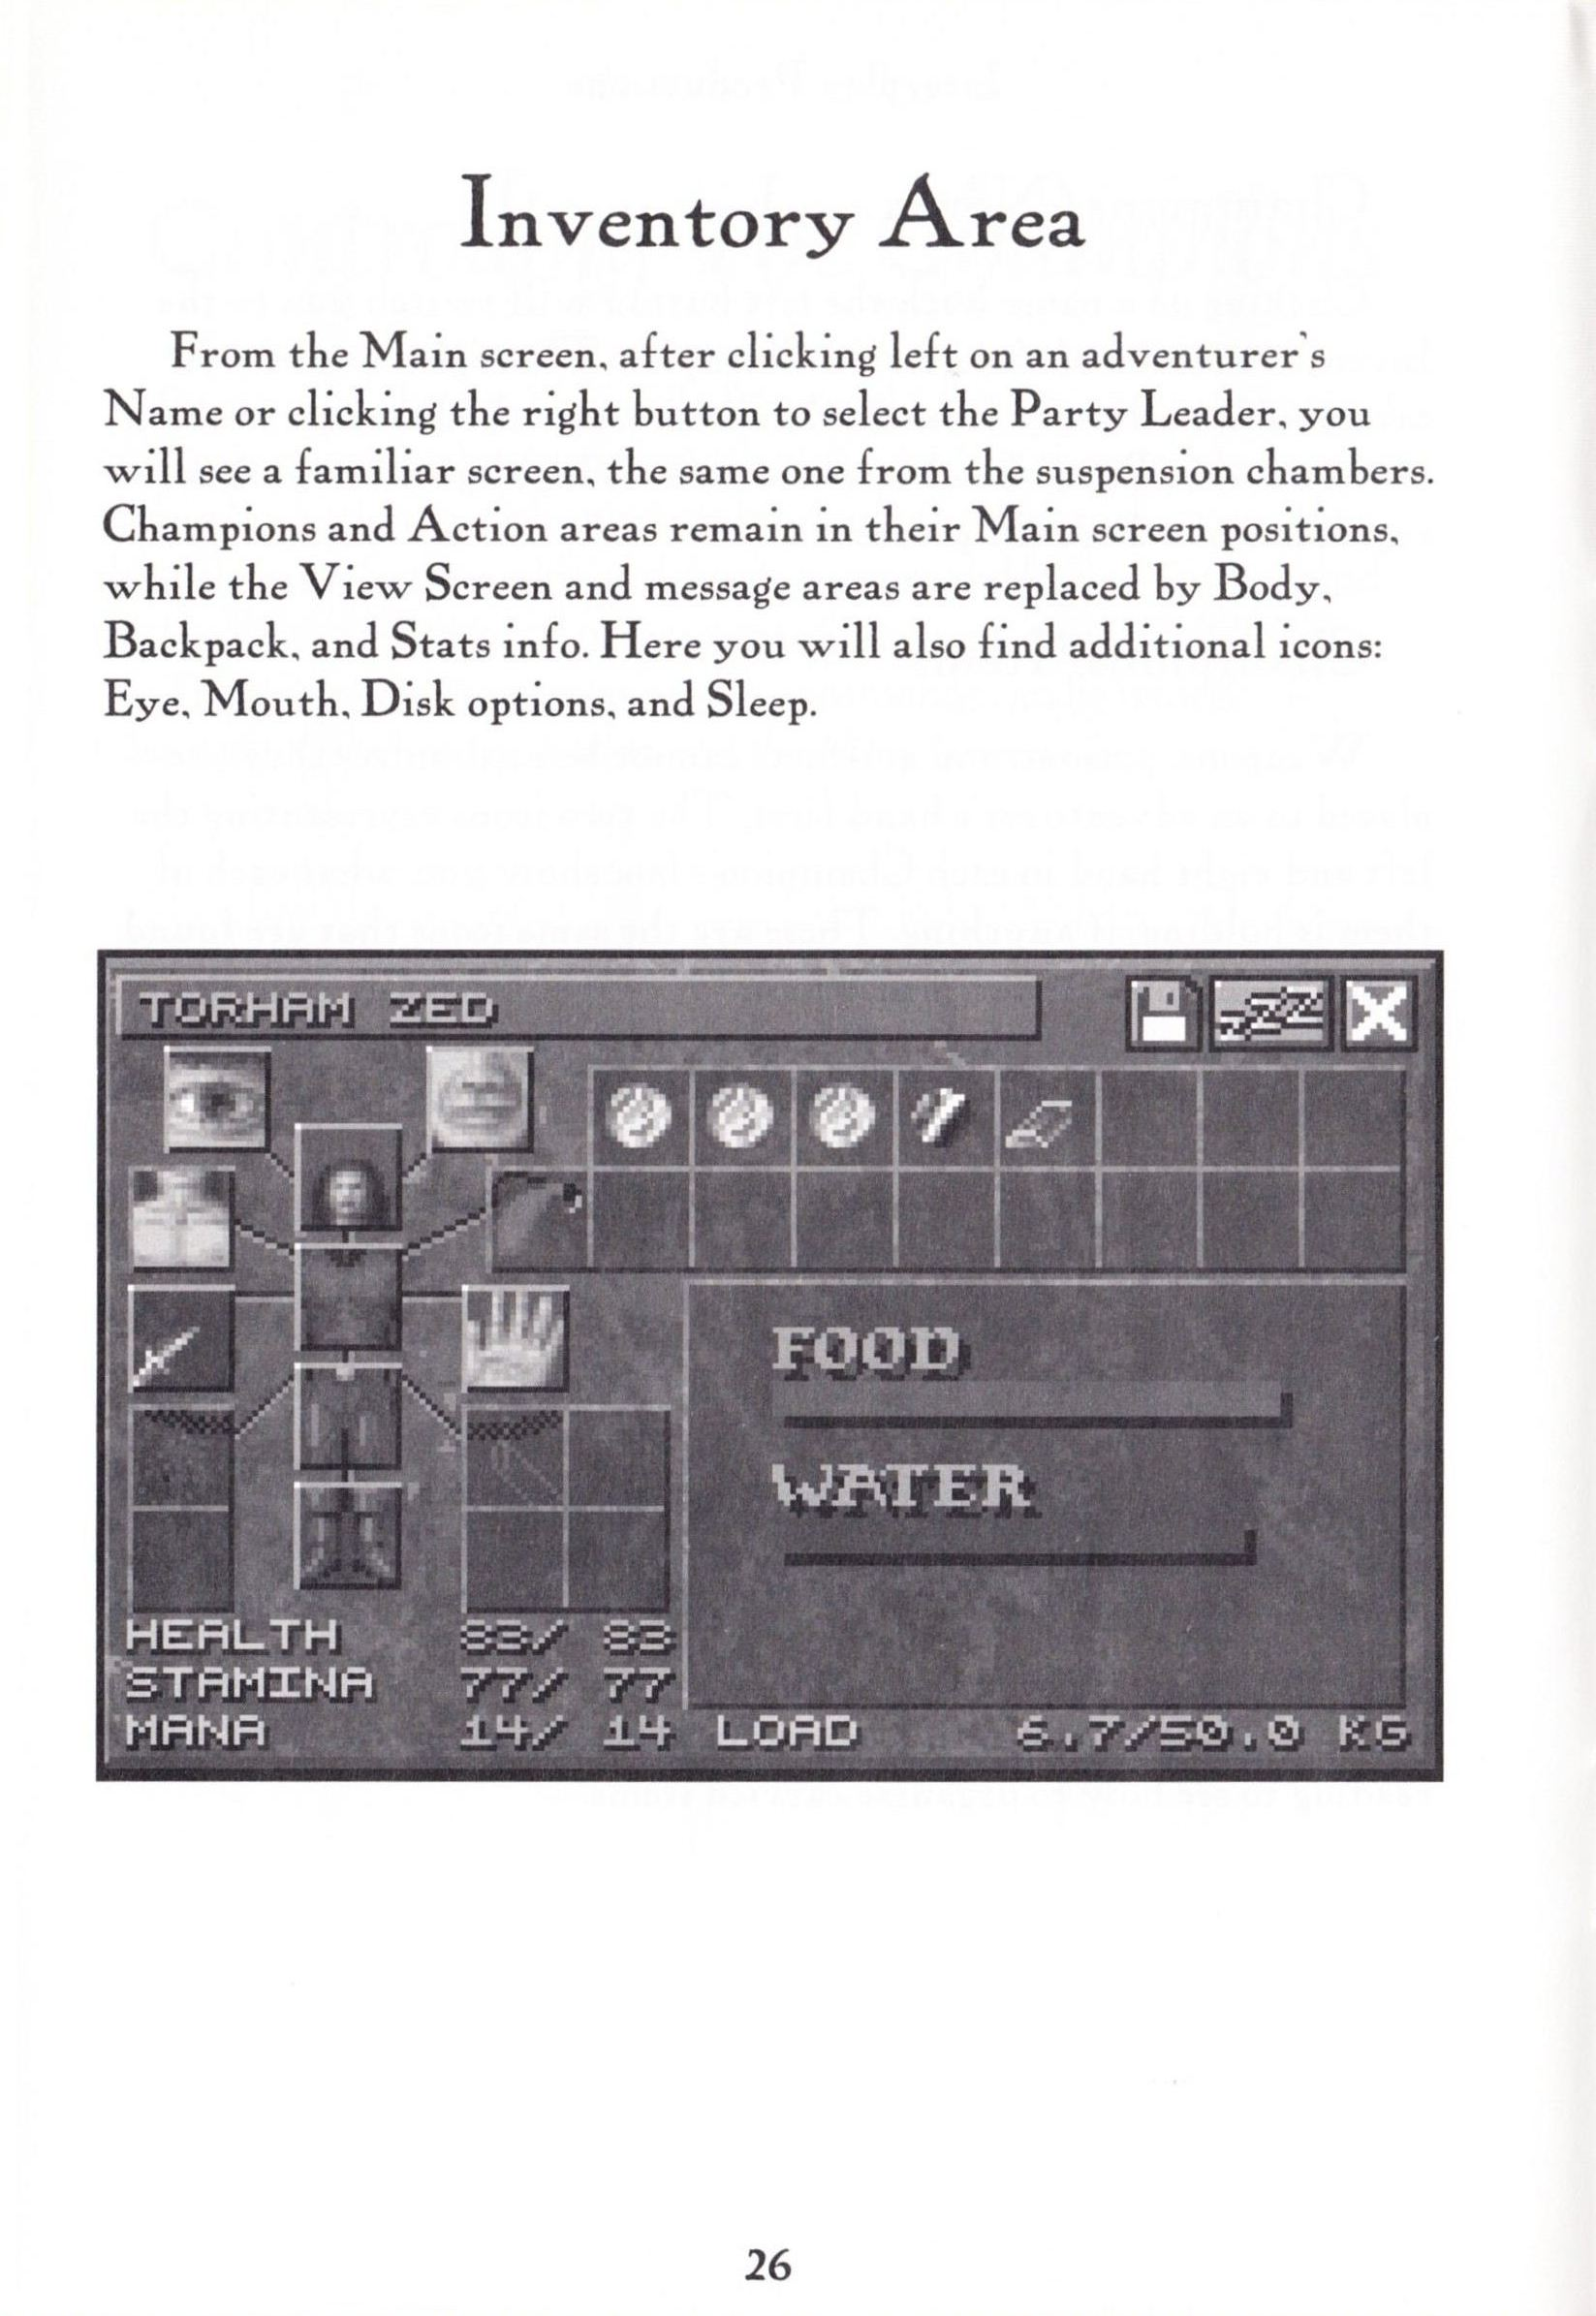 Game - Dungeon Master II - US - PC - Big Box - Manual - Page 028 - Scan